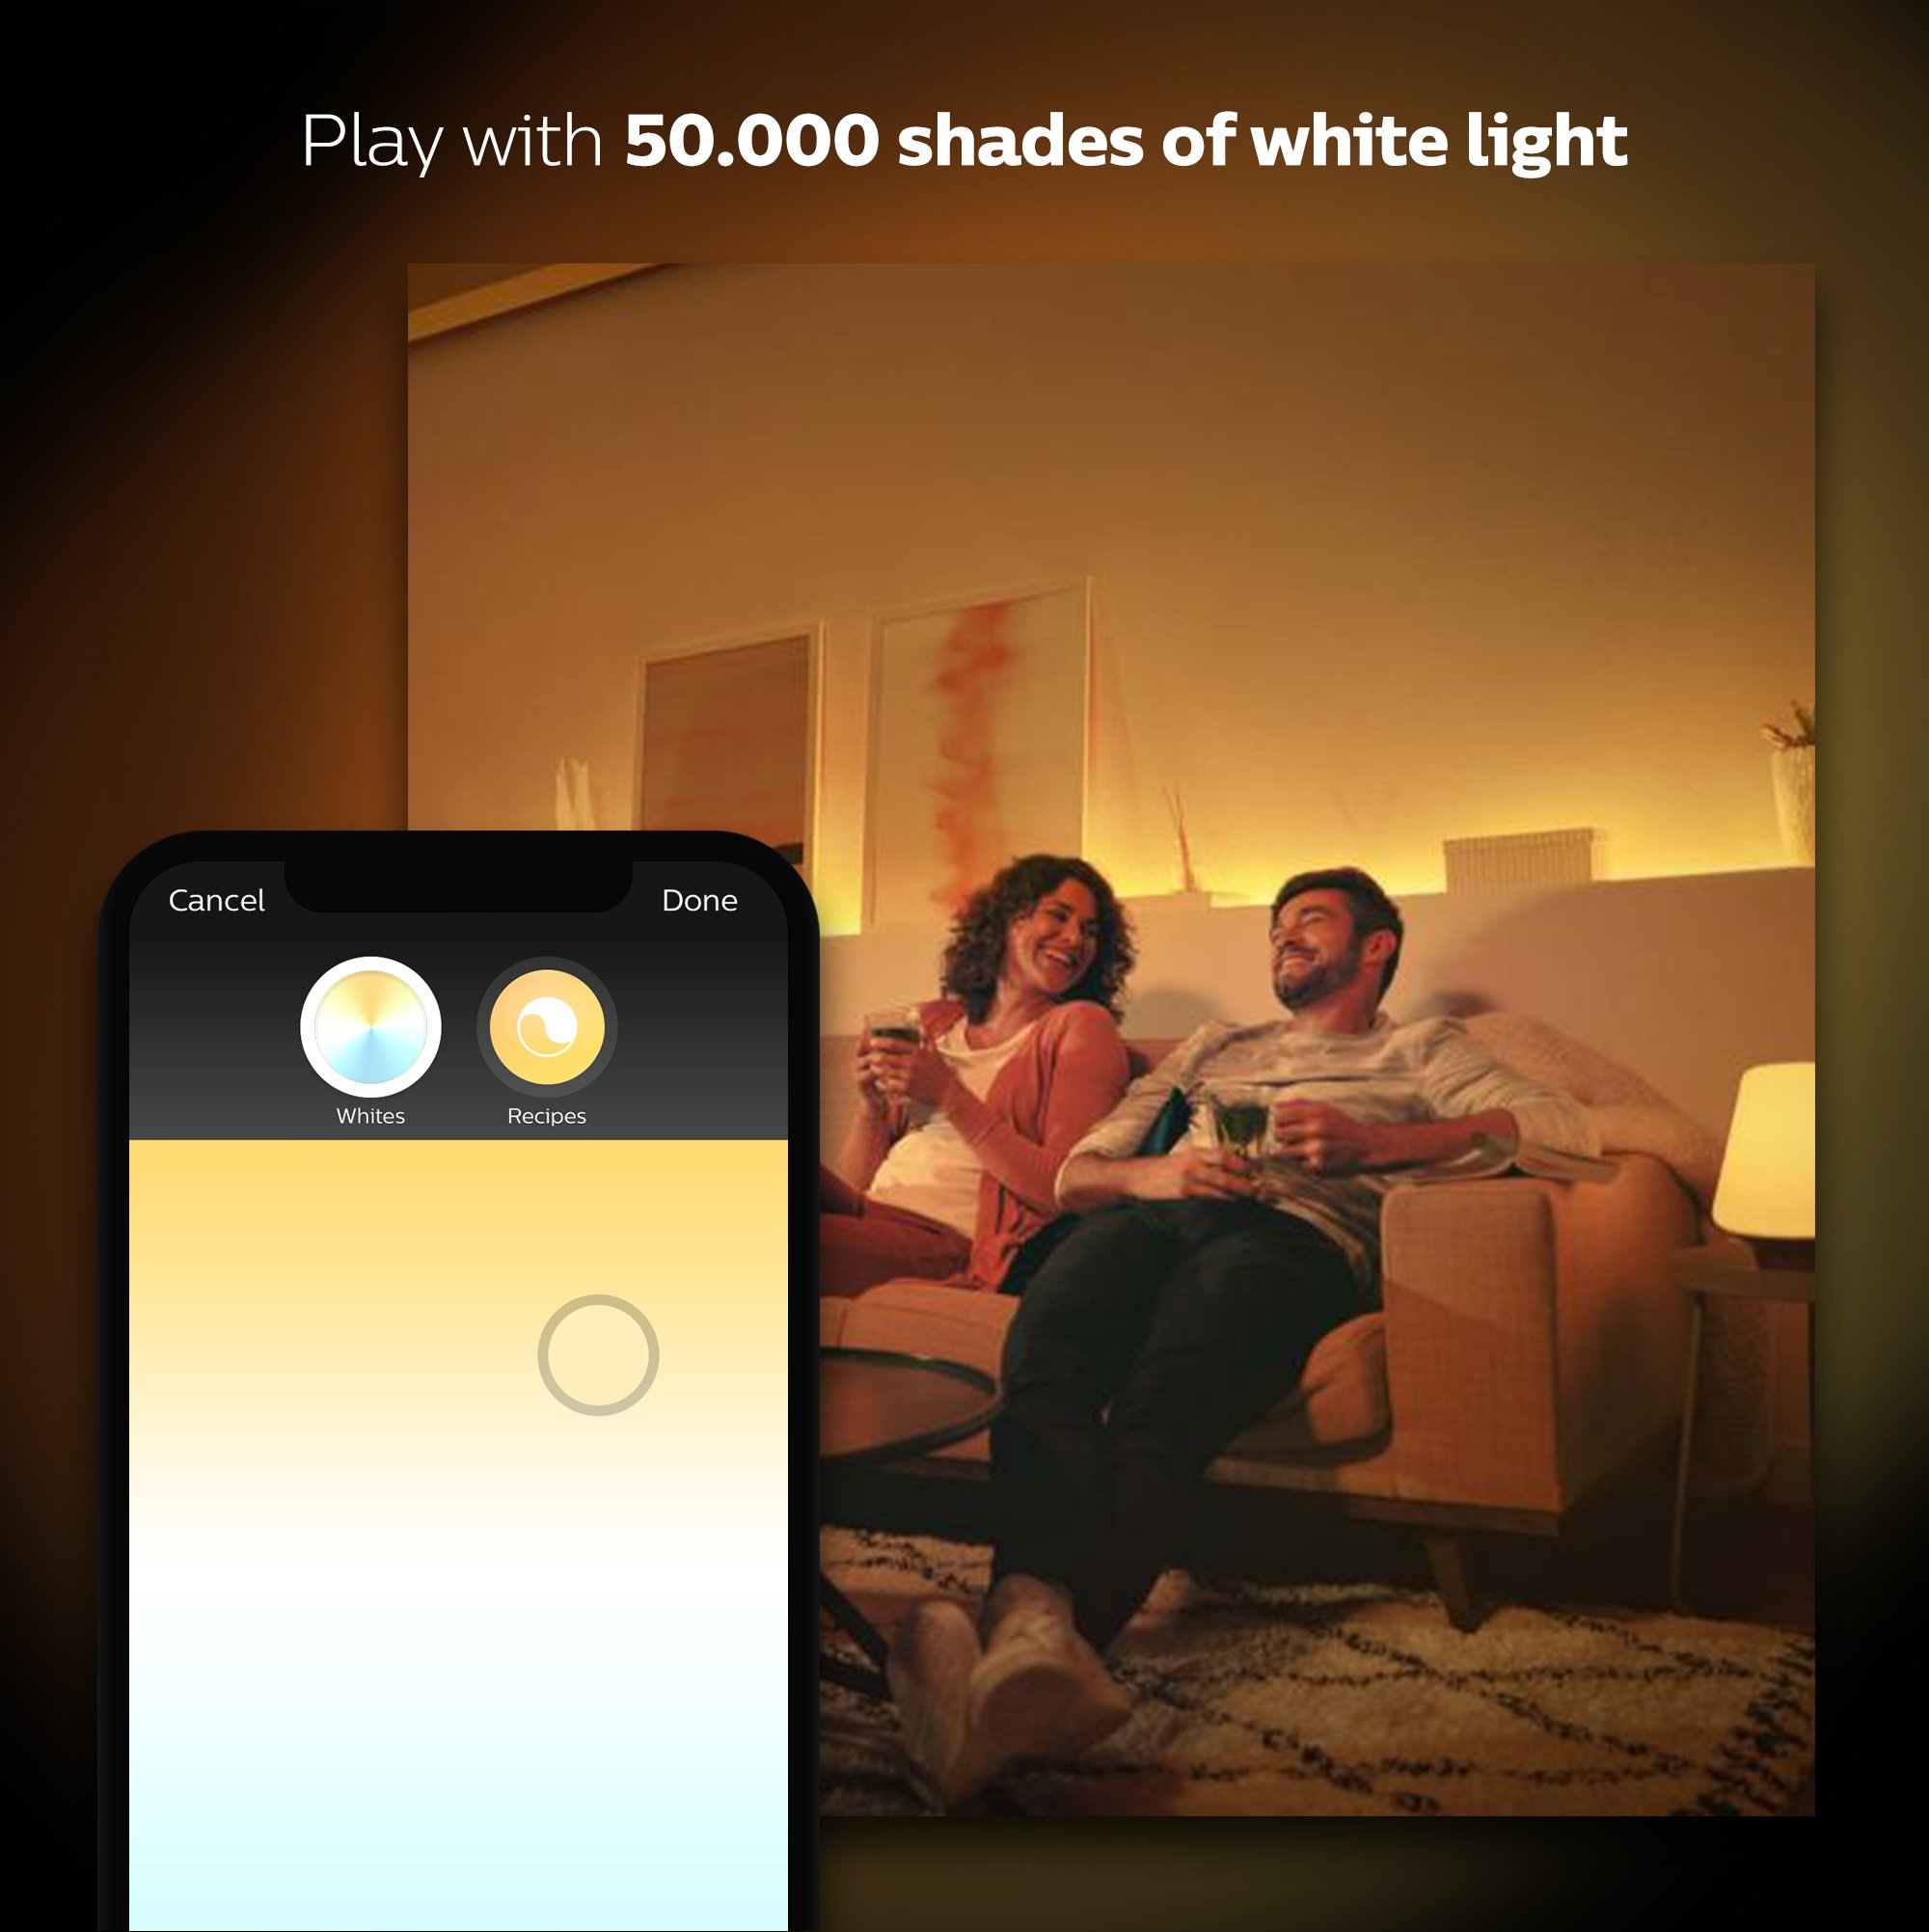 Philips Hue 2-Pack White Ambiance 60W Equivalent Dimmable LED Smart Bulb (Works with Alexa Apple Homekit and Google Assistant) by Philips Hue (Image #3)